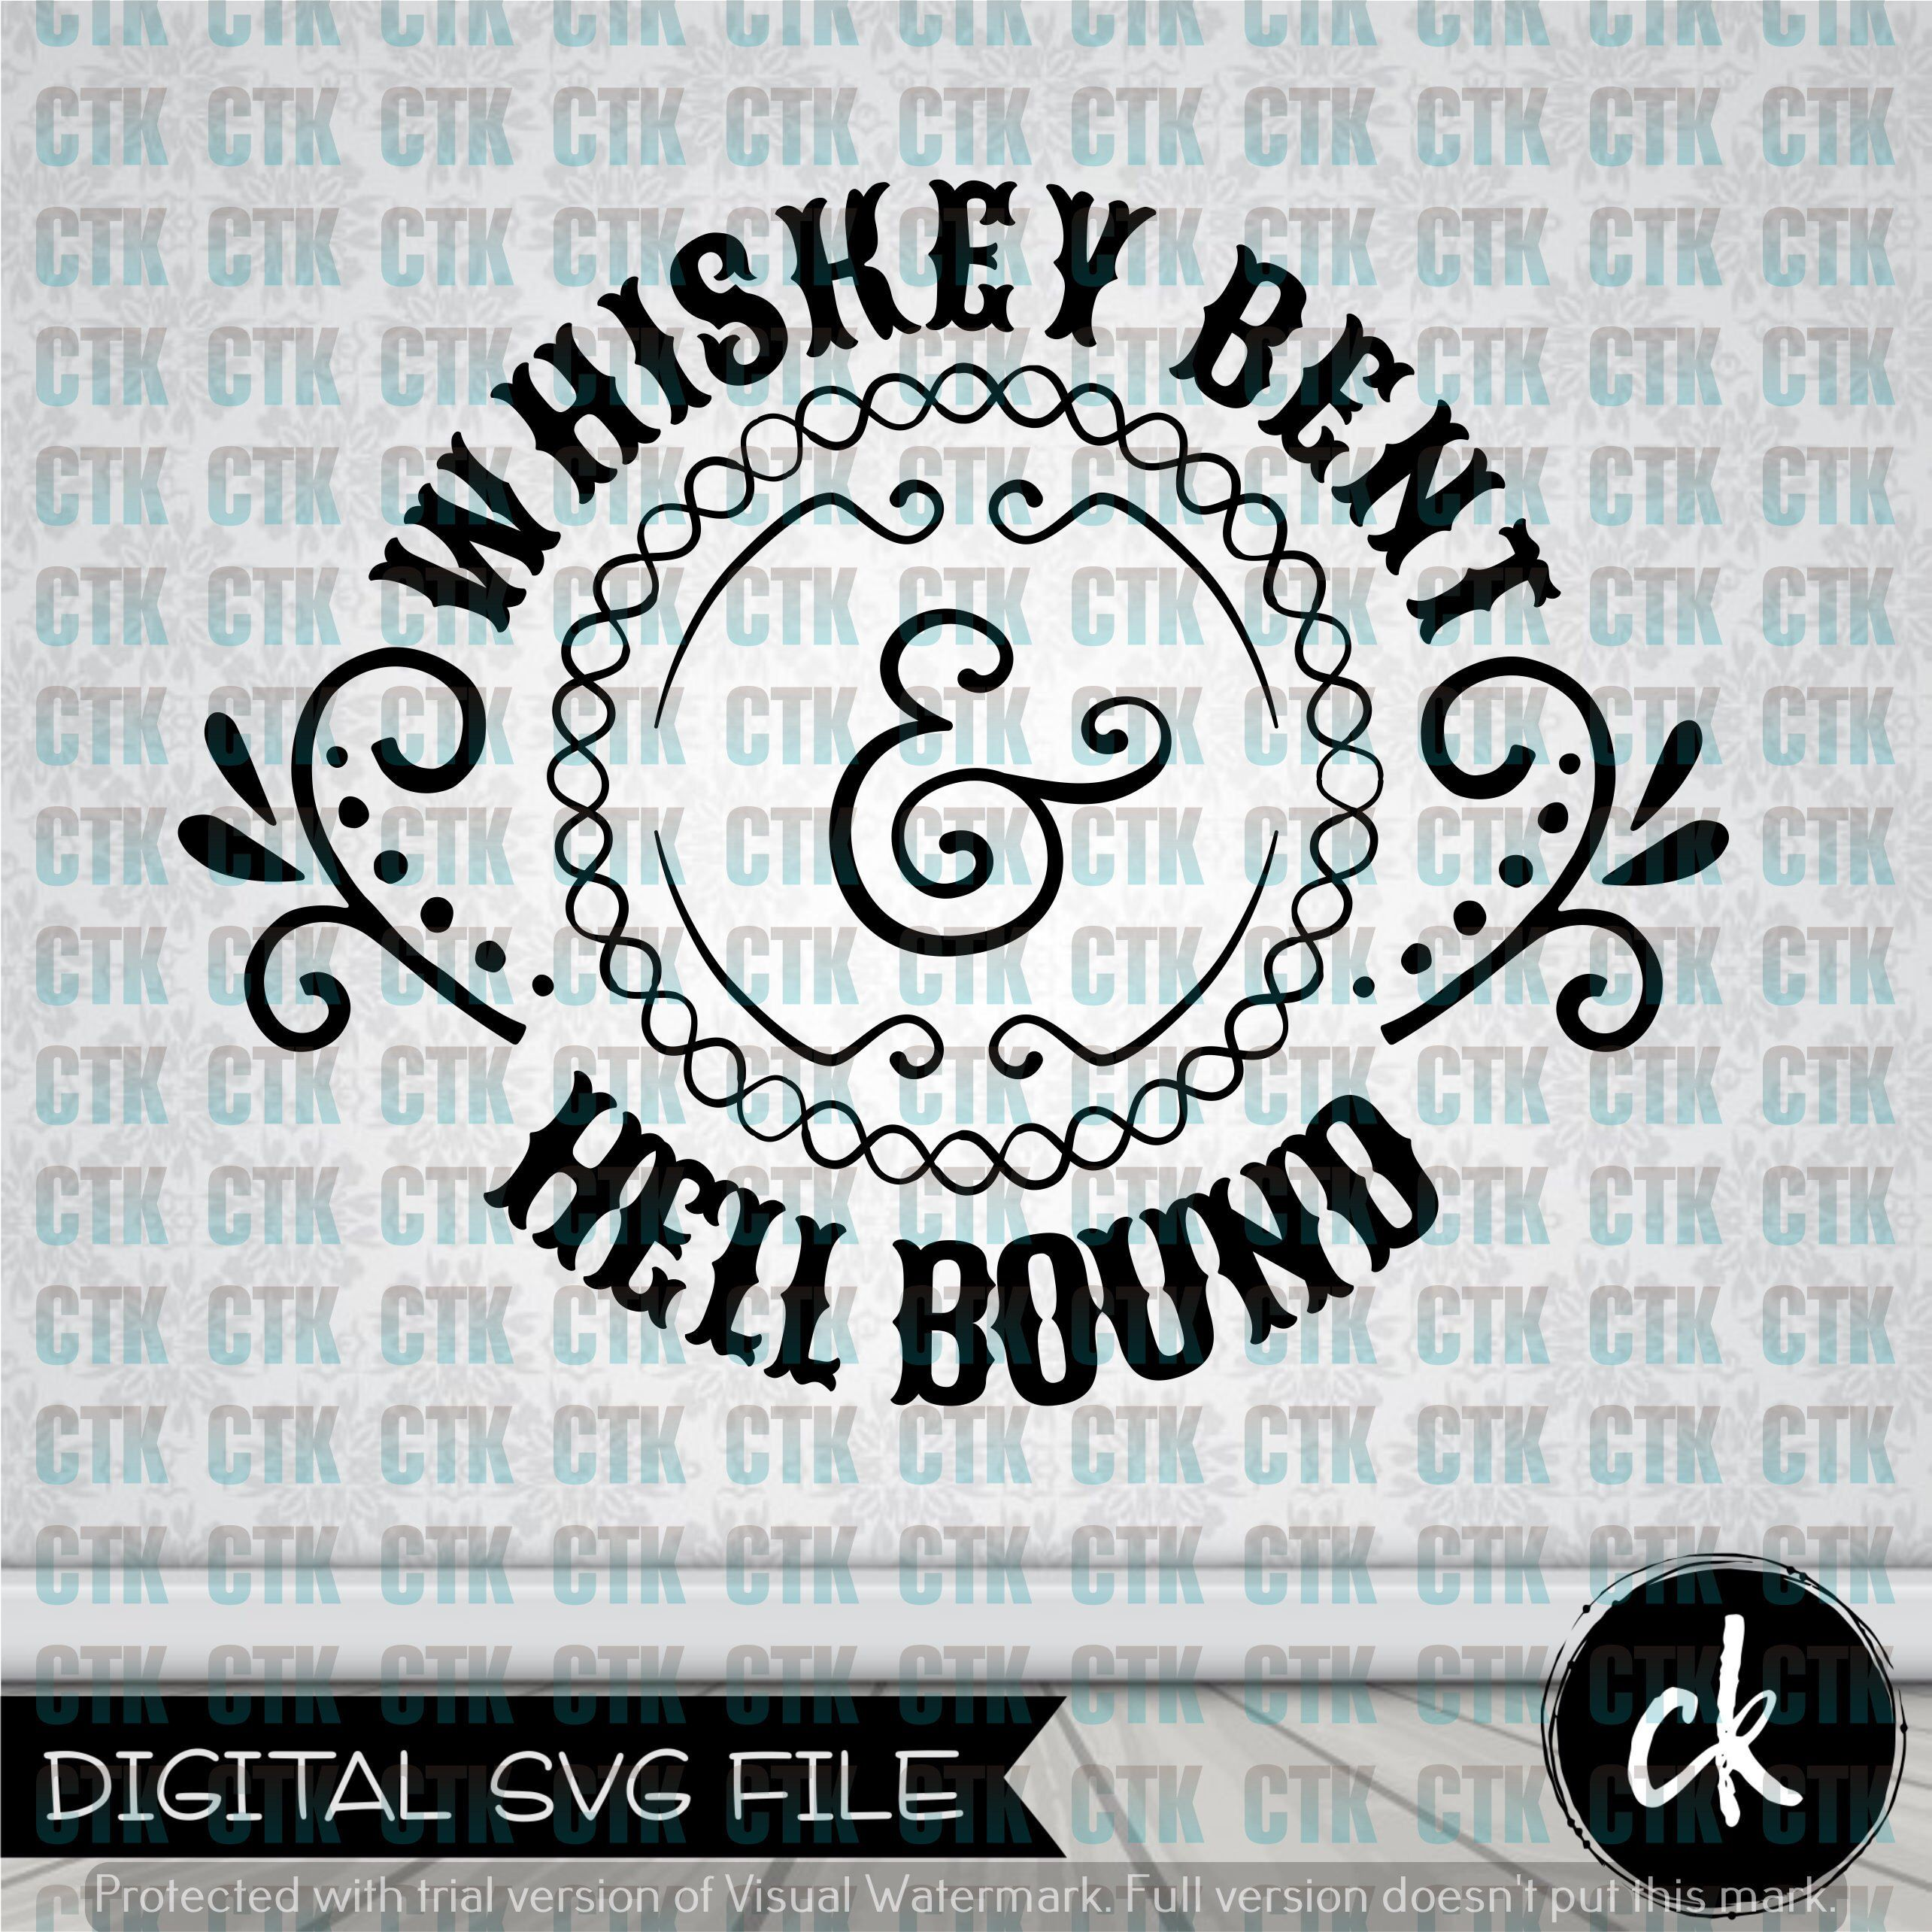 whiskey bent | Svg downloads | Svg files for cricut, Cutting